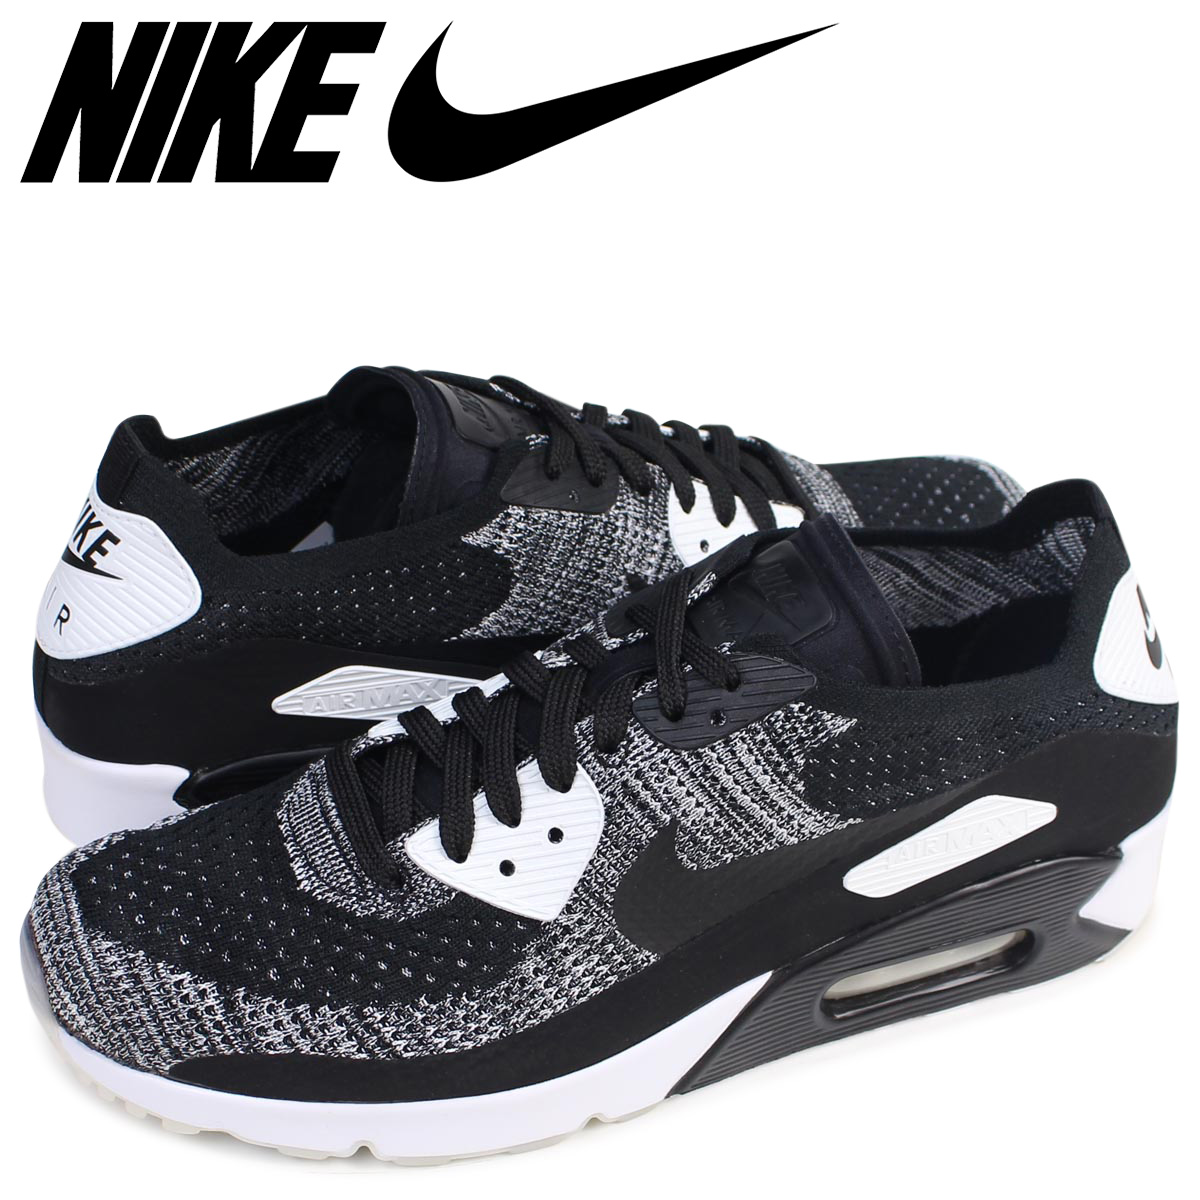 d96879c23ae Whats up Sports  Nike NIKE Air Max 90 ultra fly knit sneakers AIR MAX 90  ULTRA 2.0 FLYKNIT 875